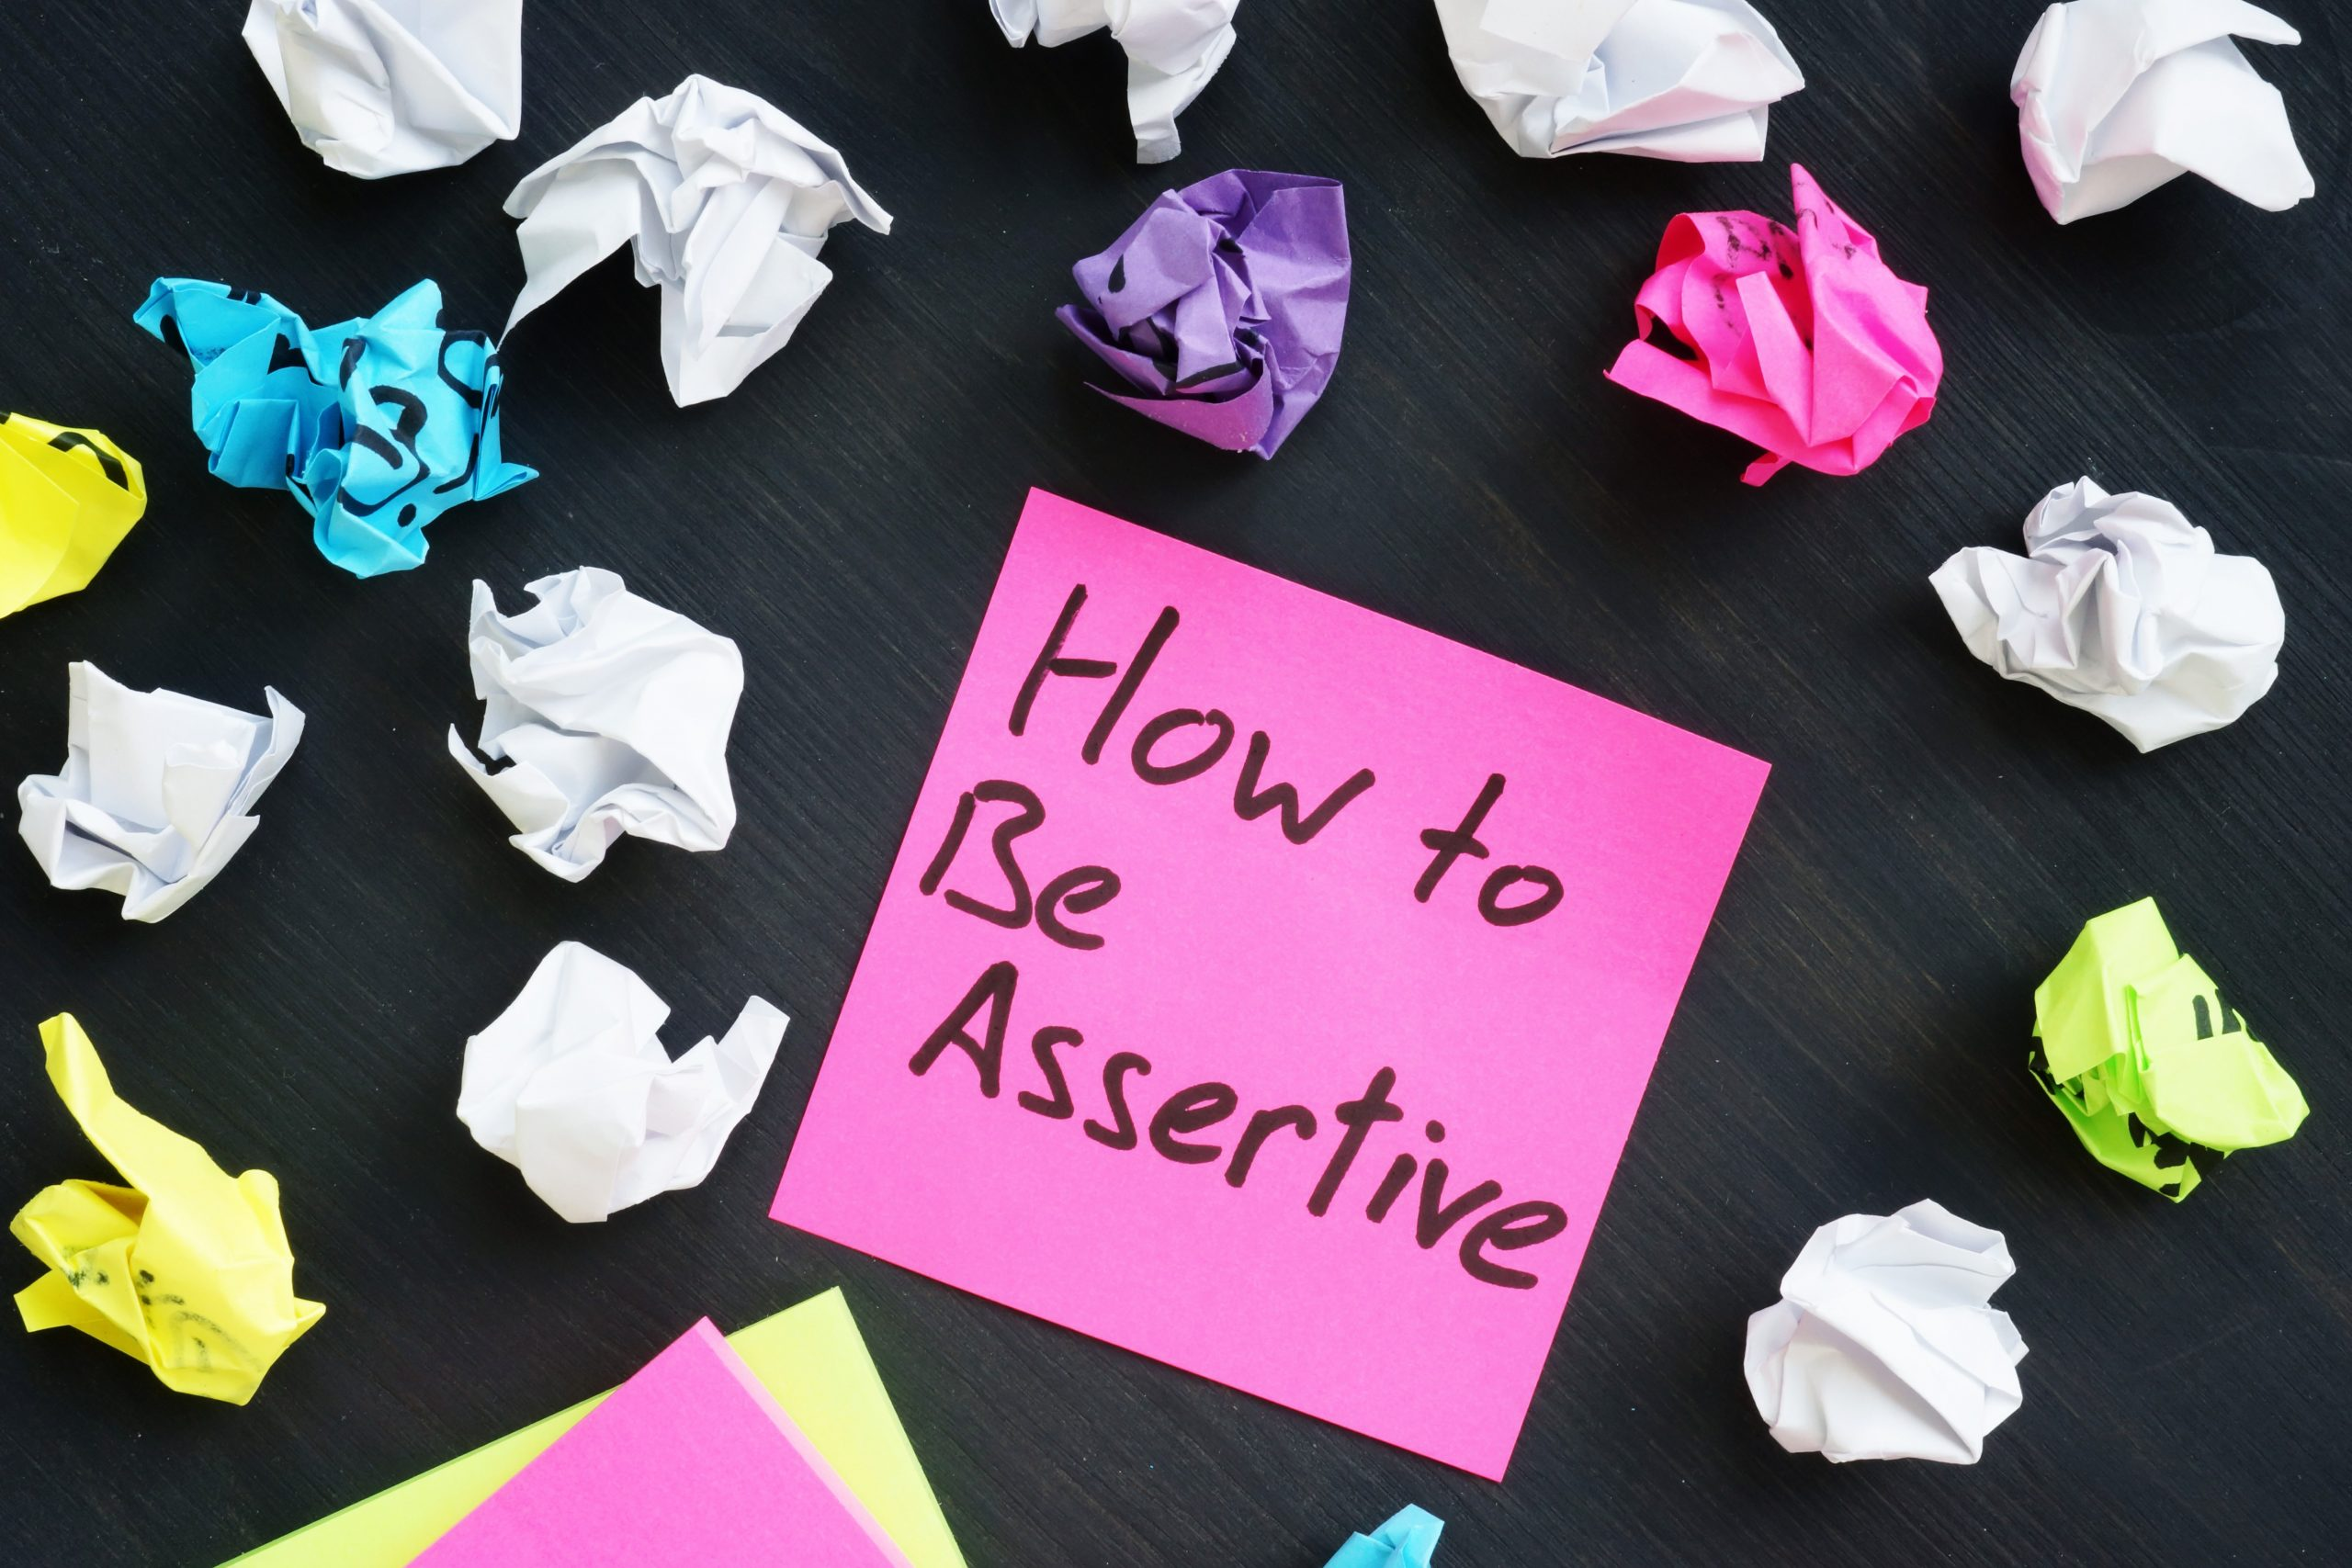 Assertive Communication: 5 Keys to Speaking Your Truth